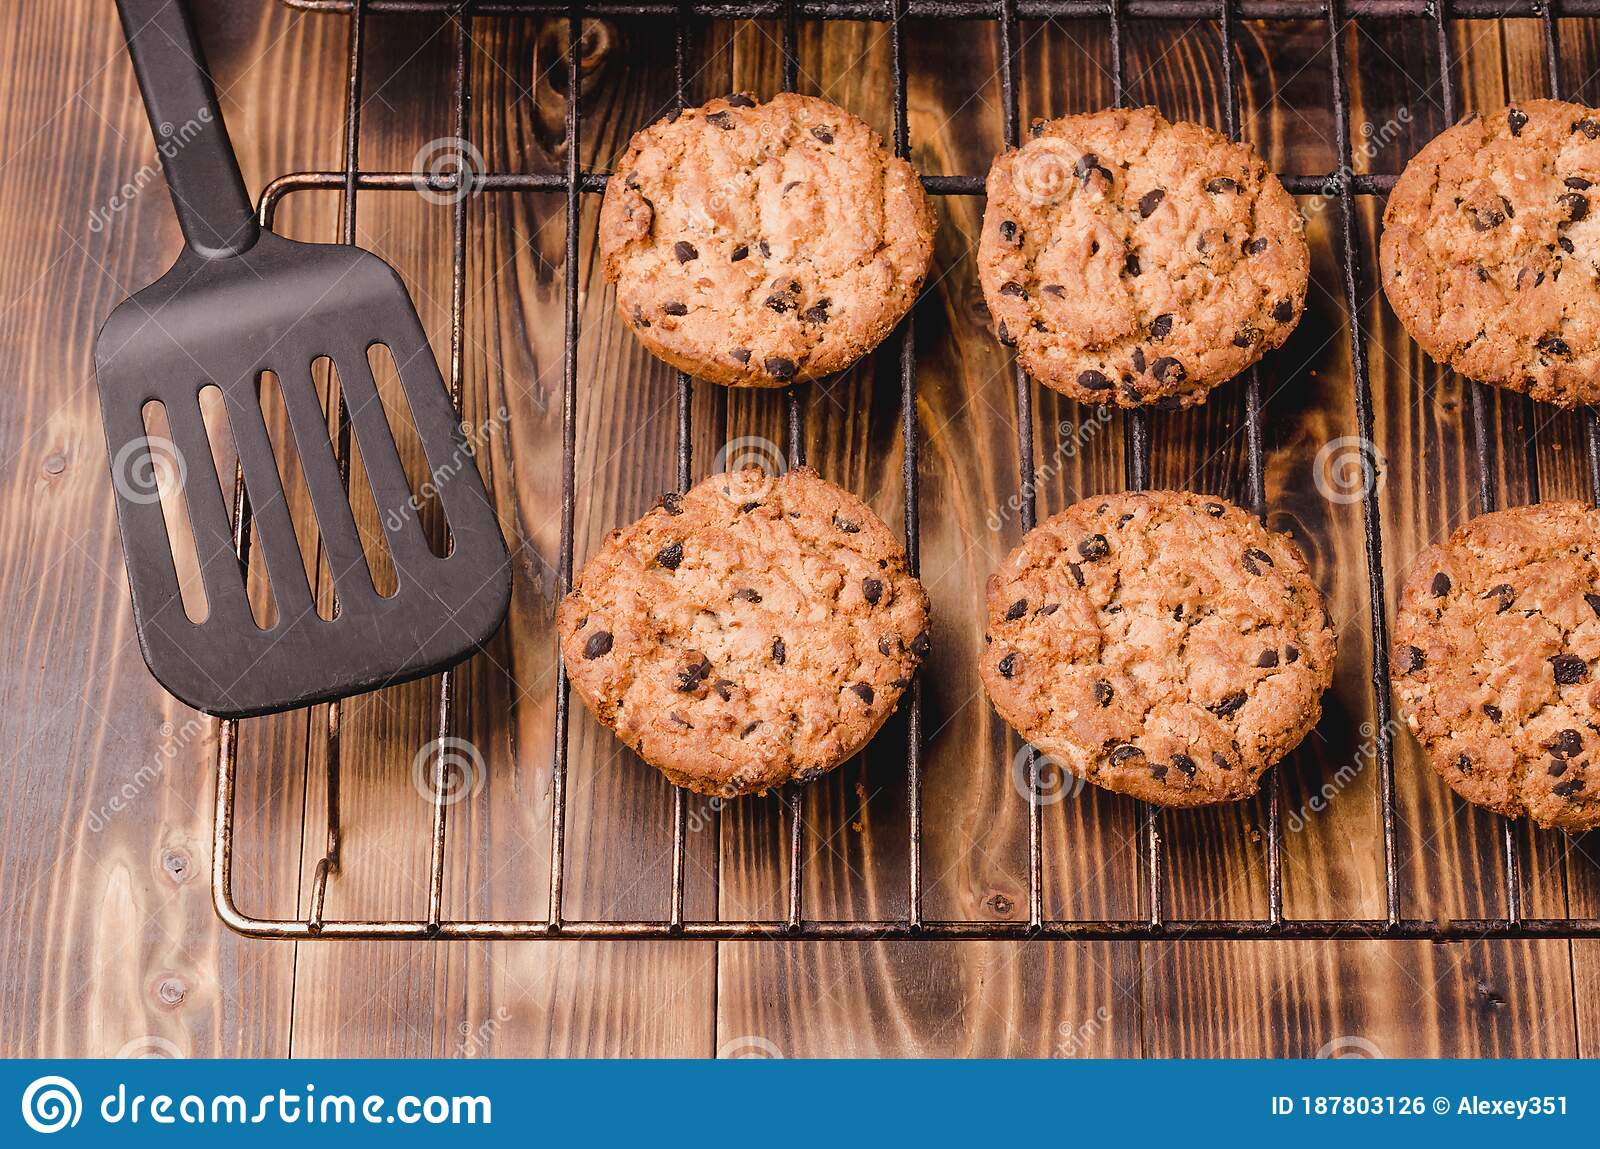 cooling rack with chocolate chip cookies cooling rack with chocolate chip cookies on wooden background top view stock photo image of tasty biscuits 187803126